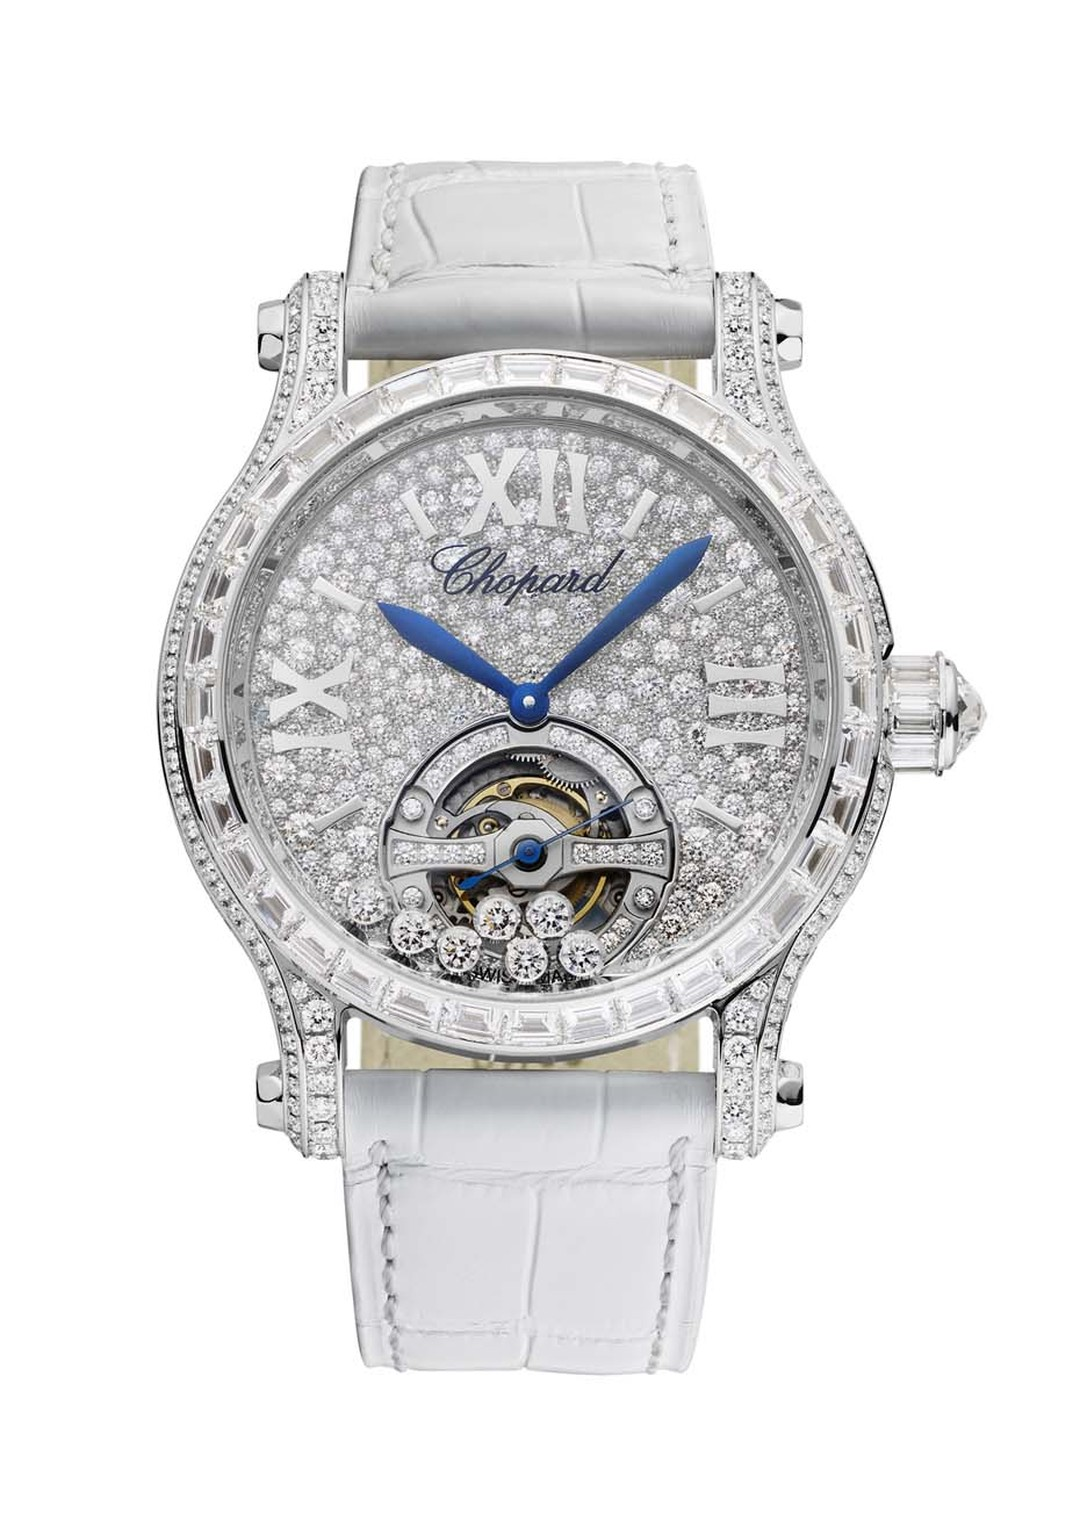 Chopard's Happy Sport Tourbillon Joaillerie watch is a glamorous take on the Happy Sport. Housing an in-house L.U.C manual-winding movement with the Poinçon de Genève quality hallmark, the tourbillon spins gracefully with its very own set of diamonds.